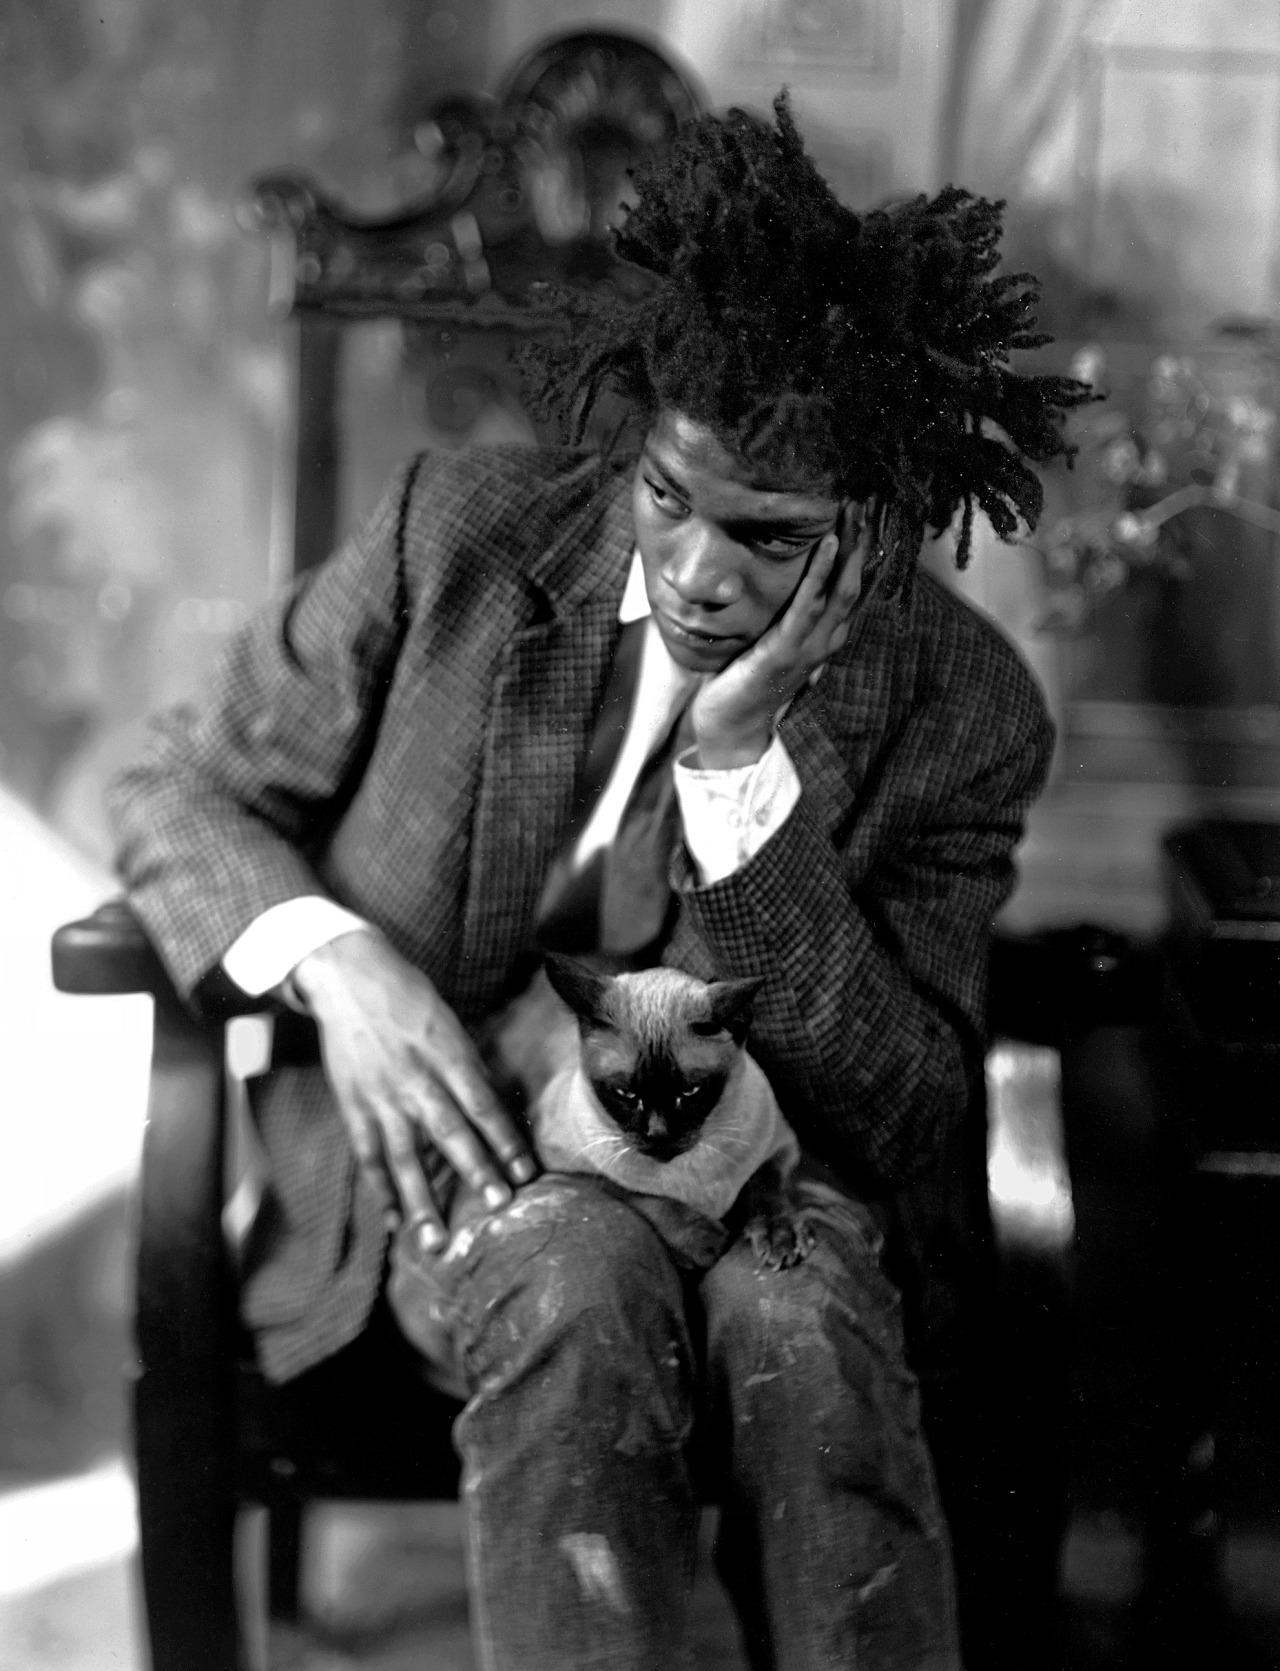 jean-michel basquiat WITH CAT